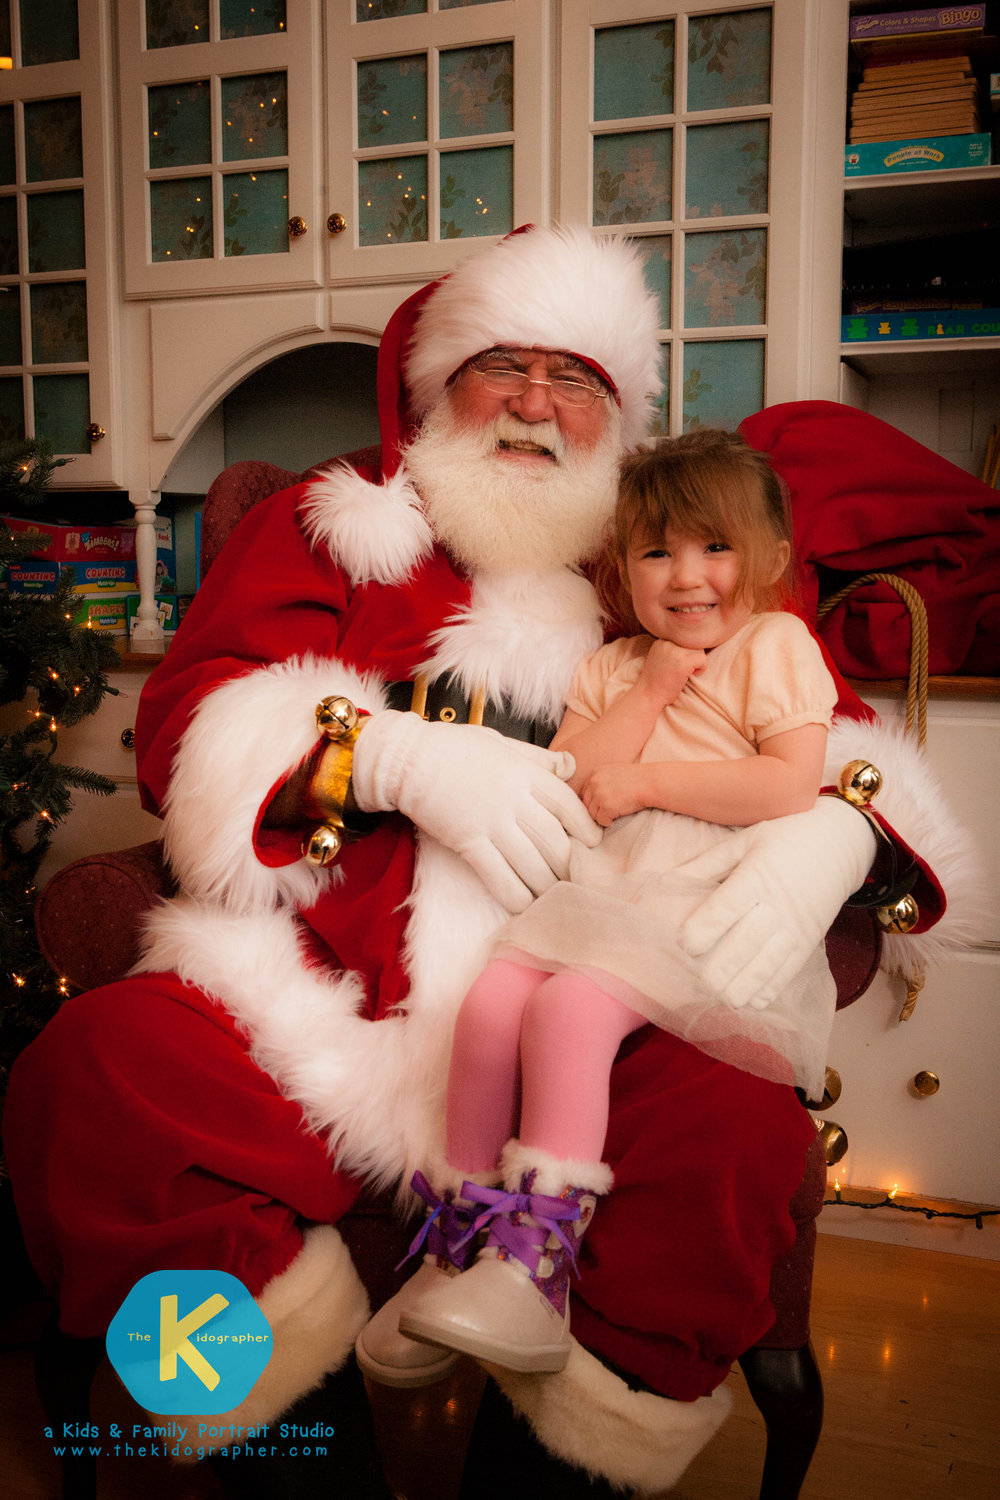 THE_KIDOGRAPHER_PHOTOS_WITH_SANTA-61.jpg